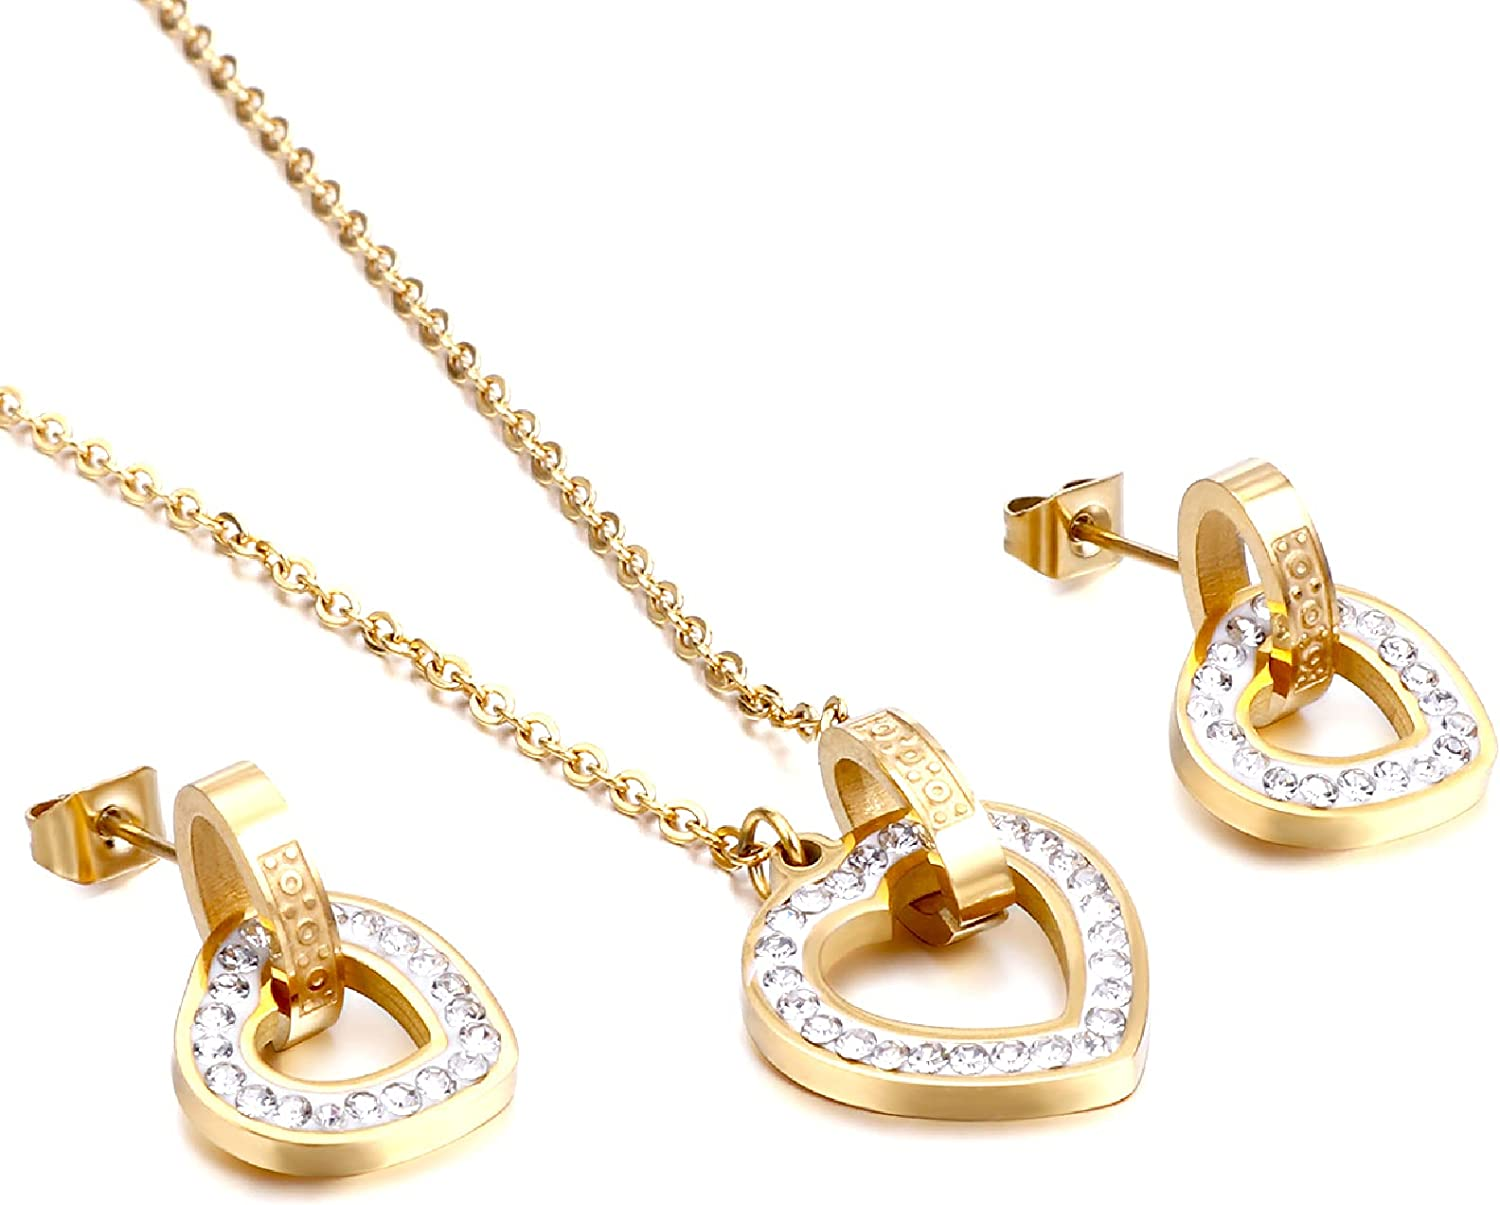 Love Heart Necklace and Earrings Set , 18K Gold Plated Jewelry Sets ,Medical 316L Necklaces for Women and Best Friend Necklaces